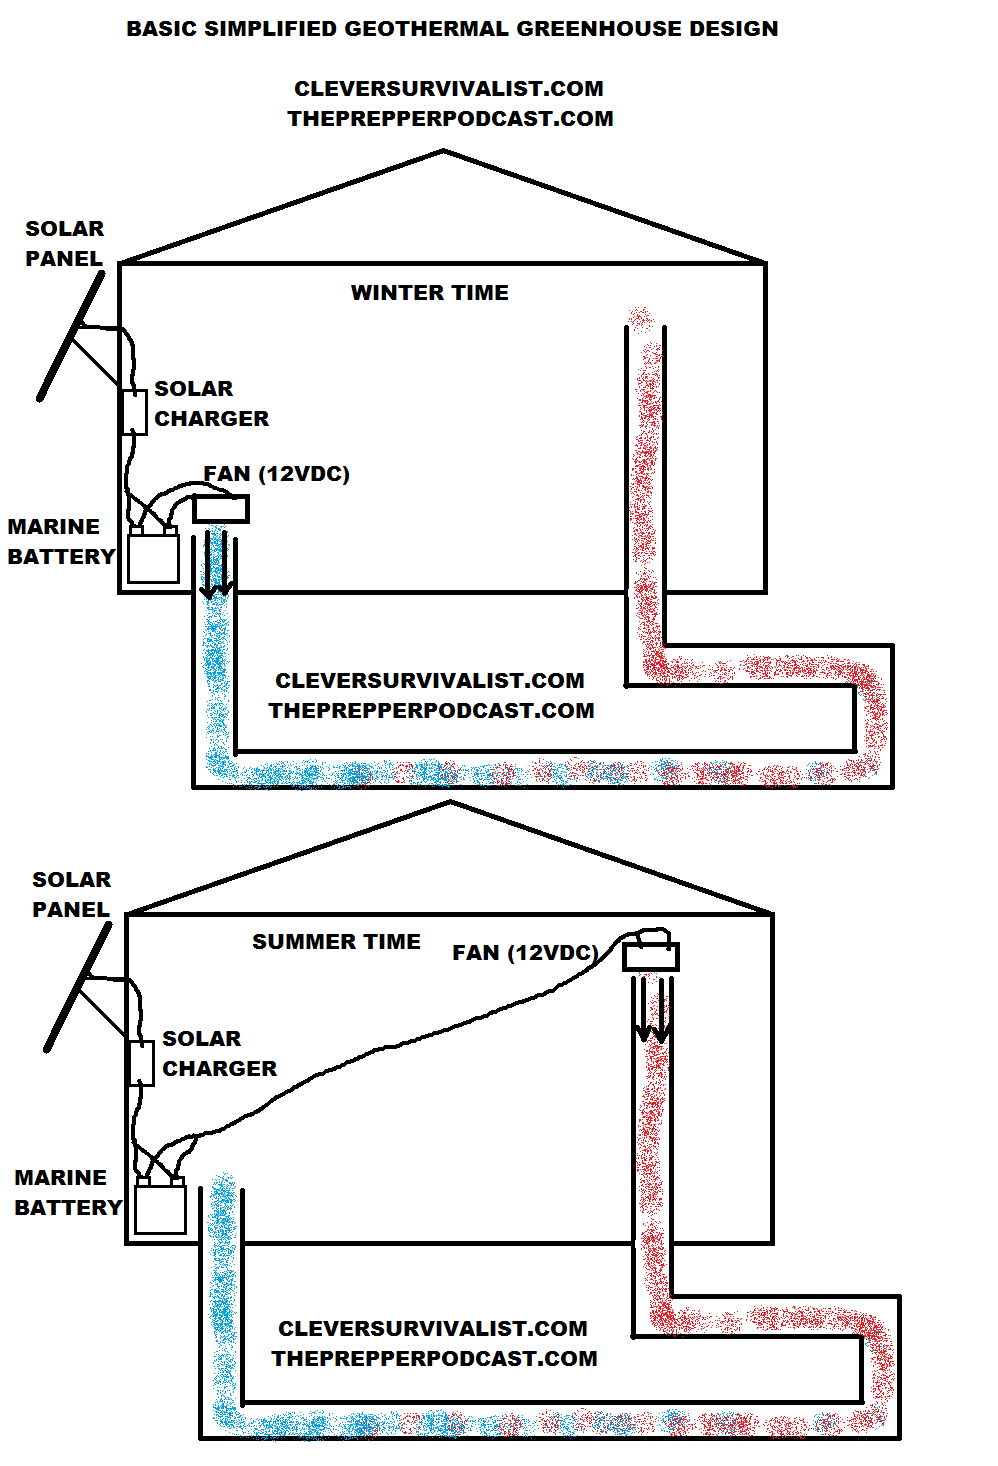 How Does Forced Air Geothermal Energy Work For Year Round Plants